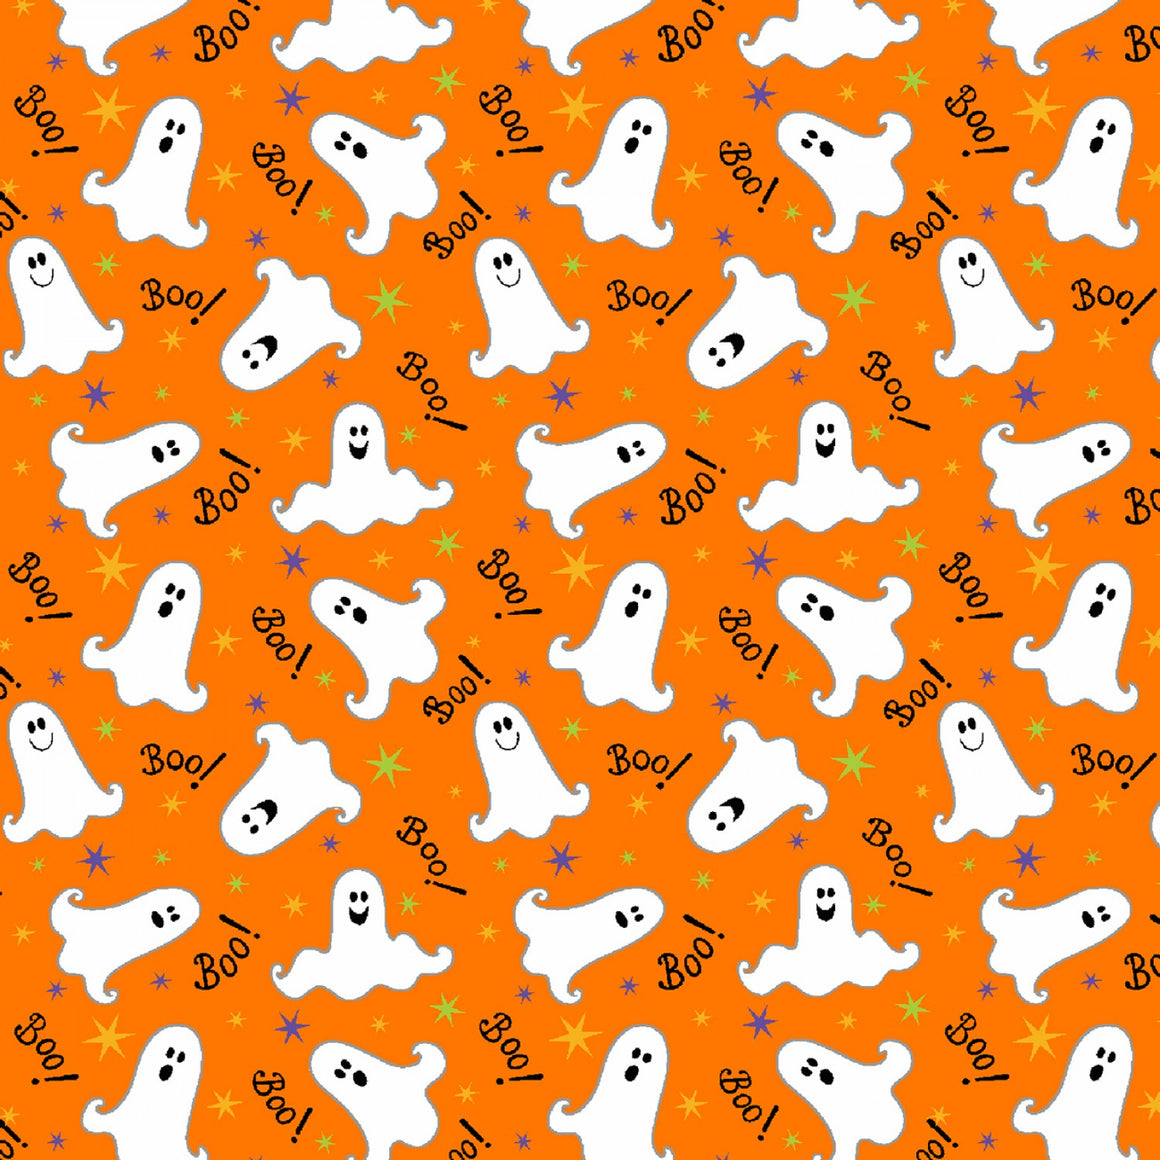 Orange Tossed Ghosts Glow in the Dark Fabric # 9541G-30